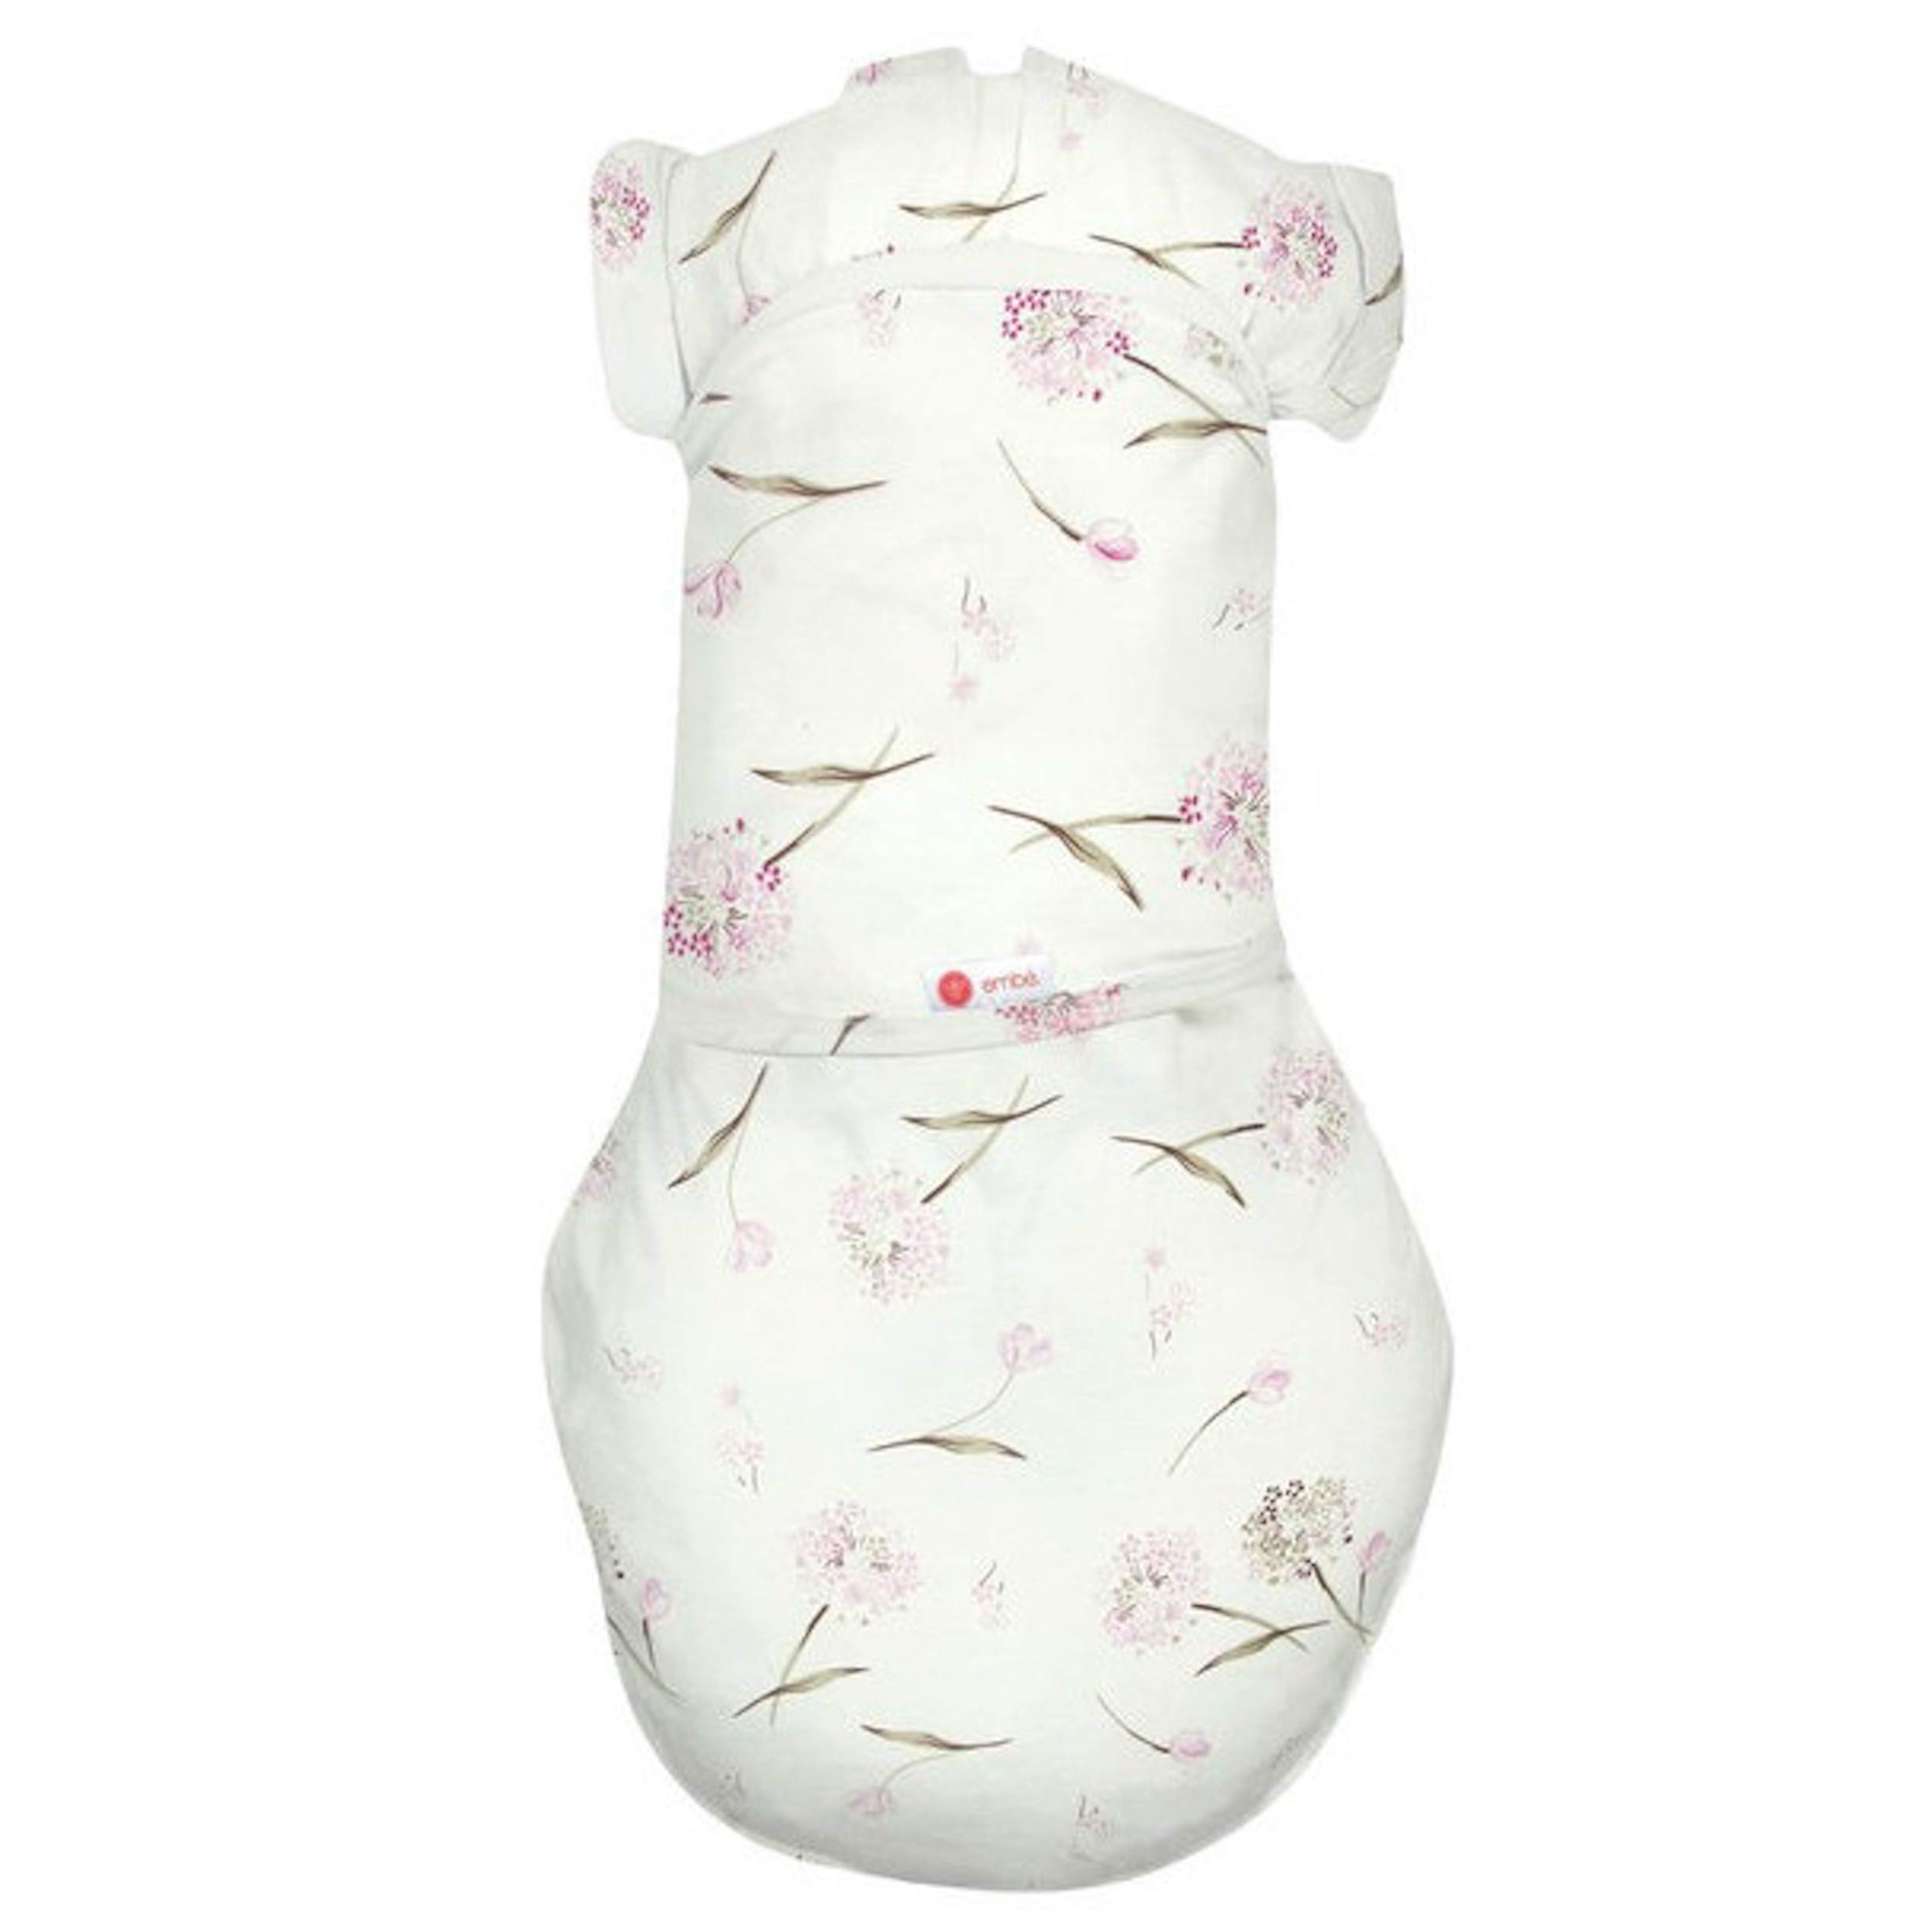 embé 2-Way Transition Swaddle Sack, 12-18 lbs, Diaper Change w/o Unswaddling, Arms in and Out, Legs in and Out Design, Warm Up or Cool Down 100% Cotton, 3-6 Months (Pink Clustered Flowers)